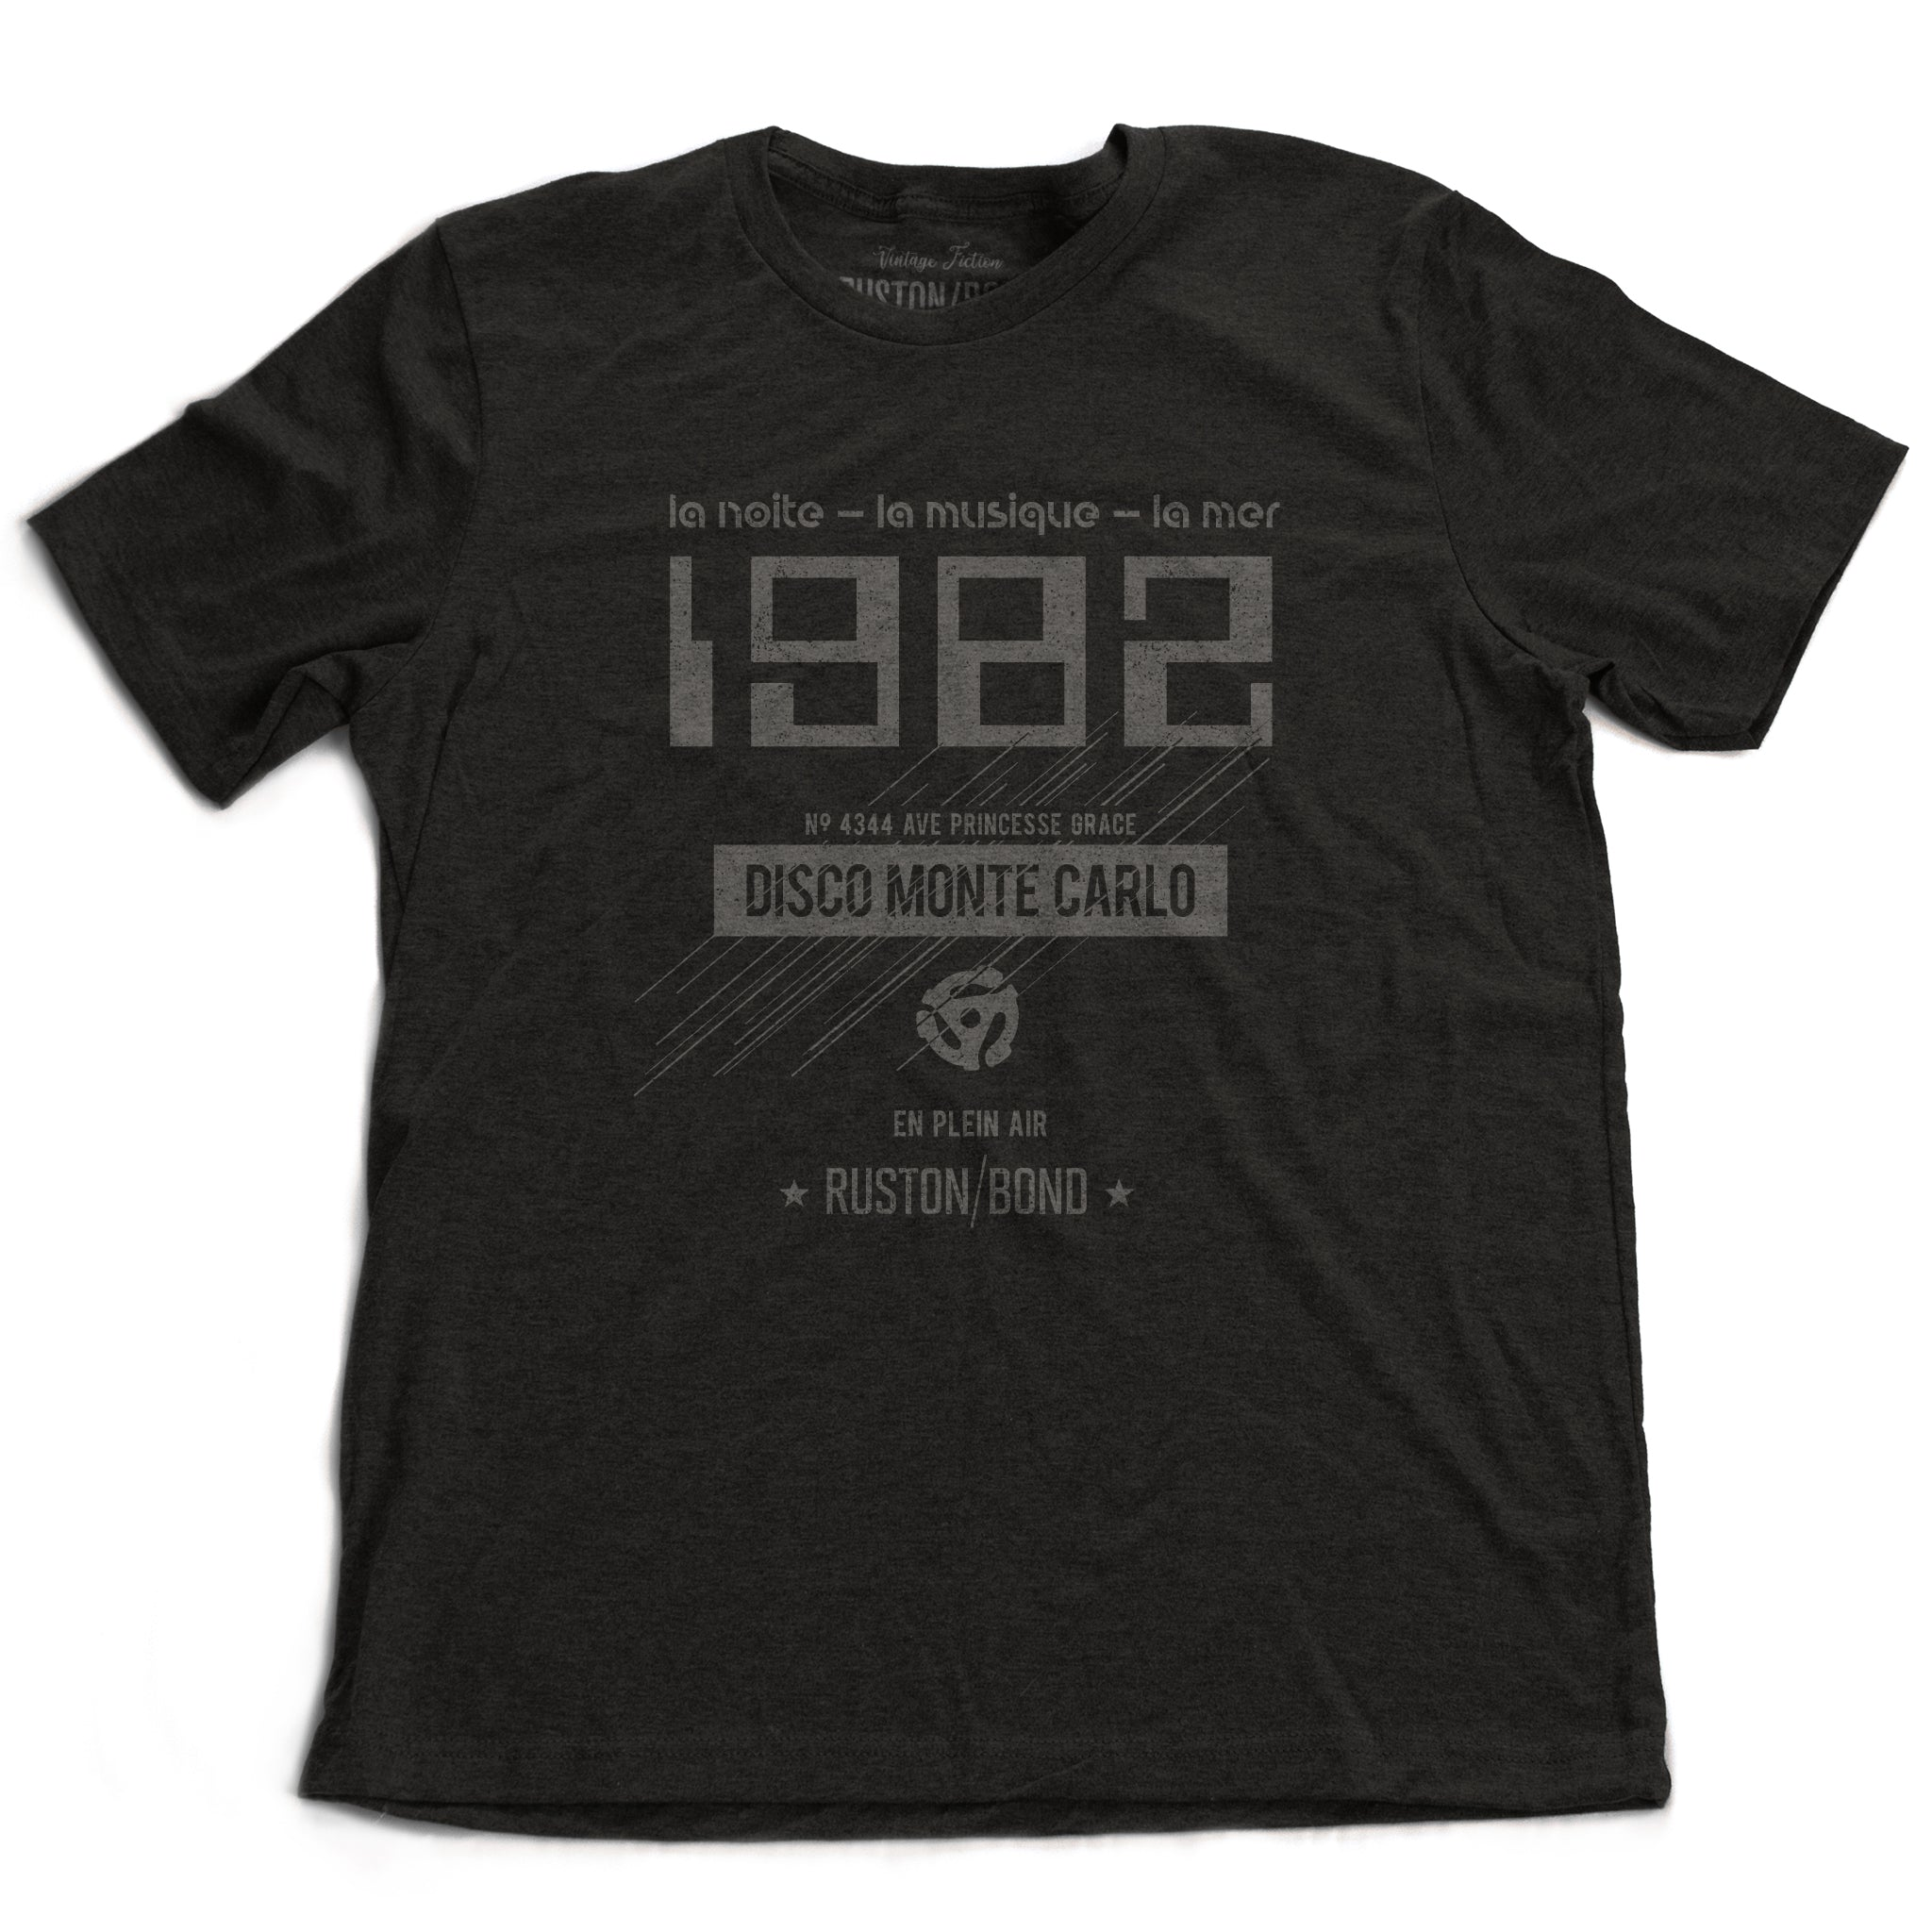 "A vintage-inspired t-shirt in classic black, featuring retro digital font reading ""1982"" with French taglines and a 45 record adapter graphic, promoting a fictional Monte Carlo discotheque from the 1970s and 80s. By fashion brand Ruston/Bond, from wolfsaint.net"